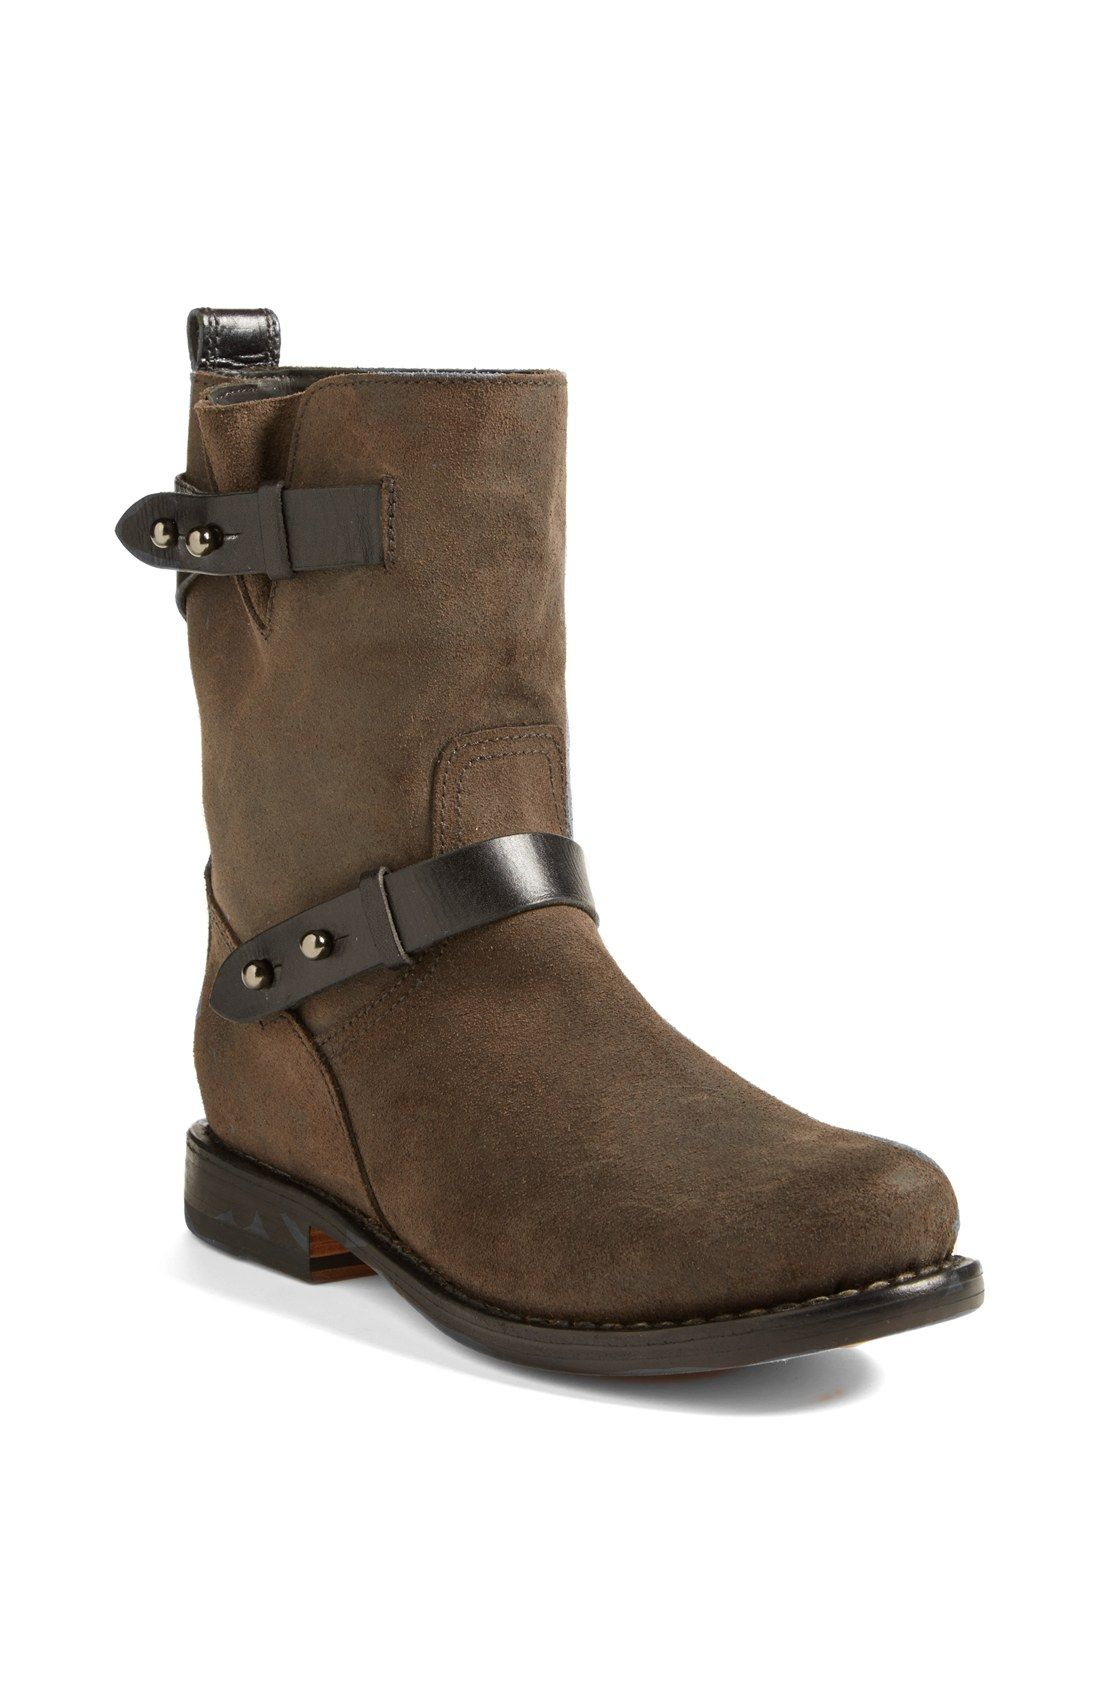 Boots, Leather moto boots, Nordstrom boots